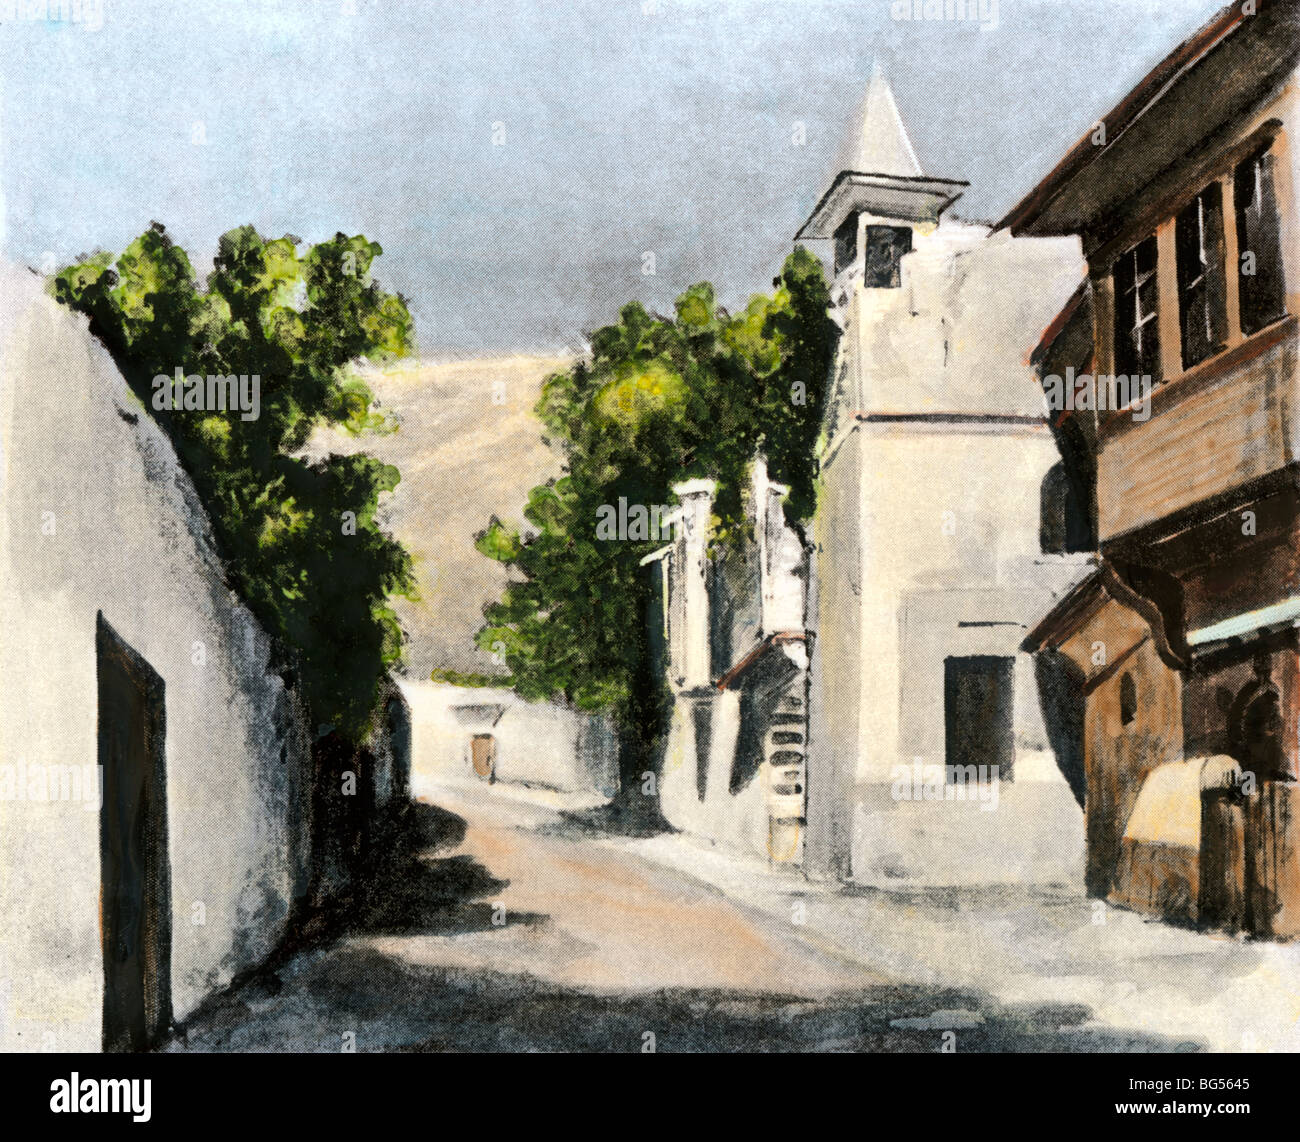 Home of Sir Richard Burton and his wife in Salahiyeh, Syria, near Damascus, 1800s. Hand-colored halftone of an illustration - Stock Image